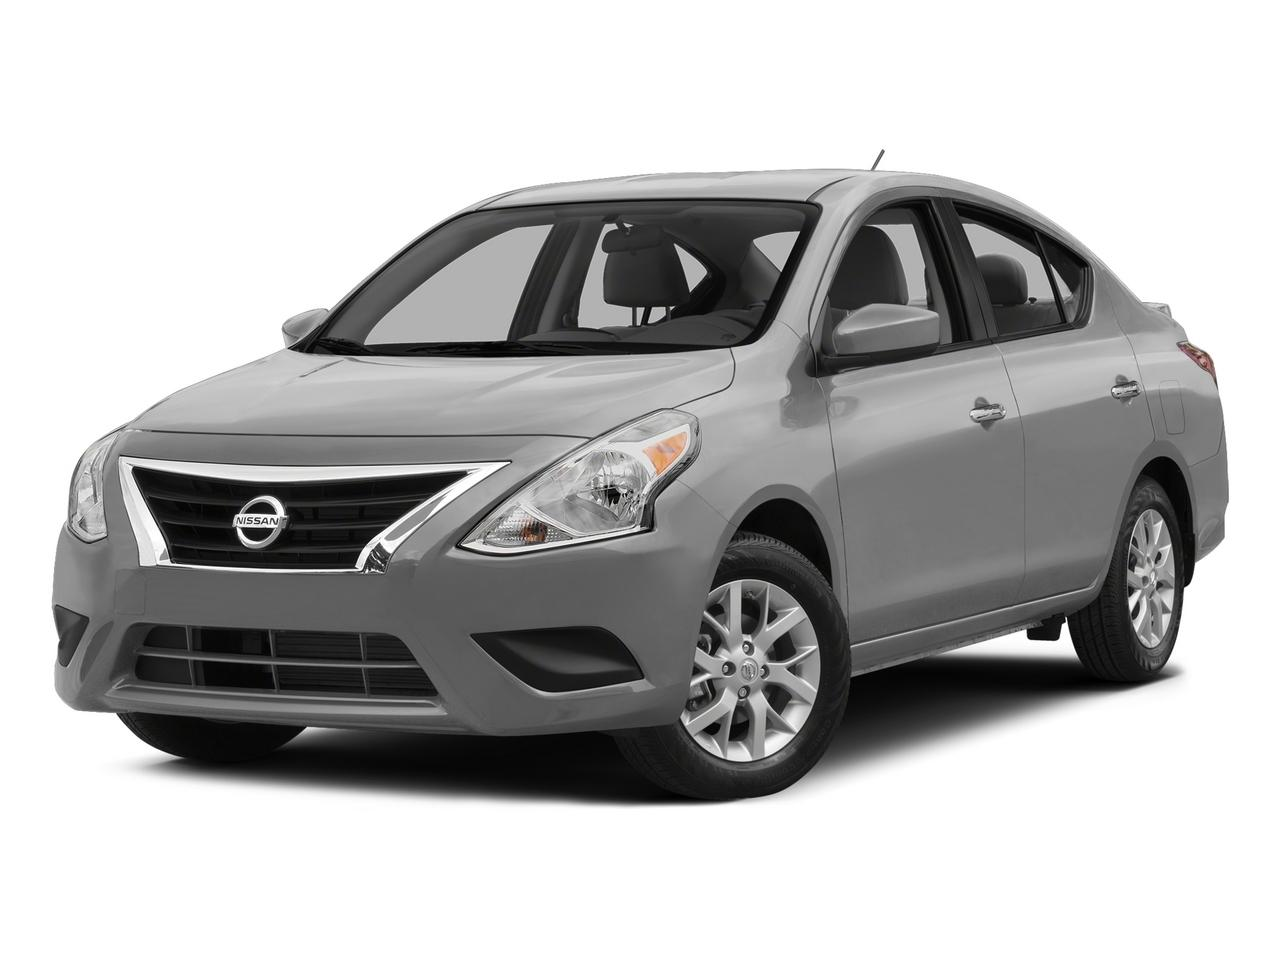 2015 Nissan Versa Vehicle Photo in Houston, TX 77054